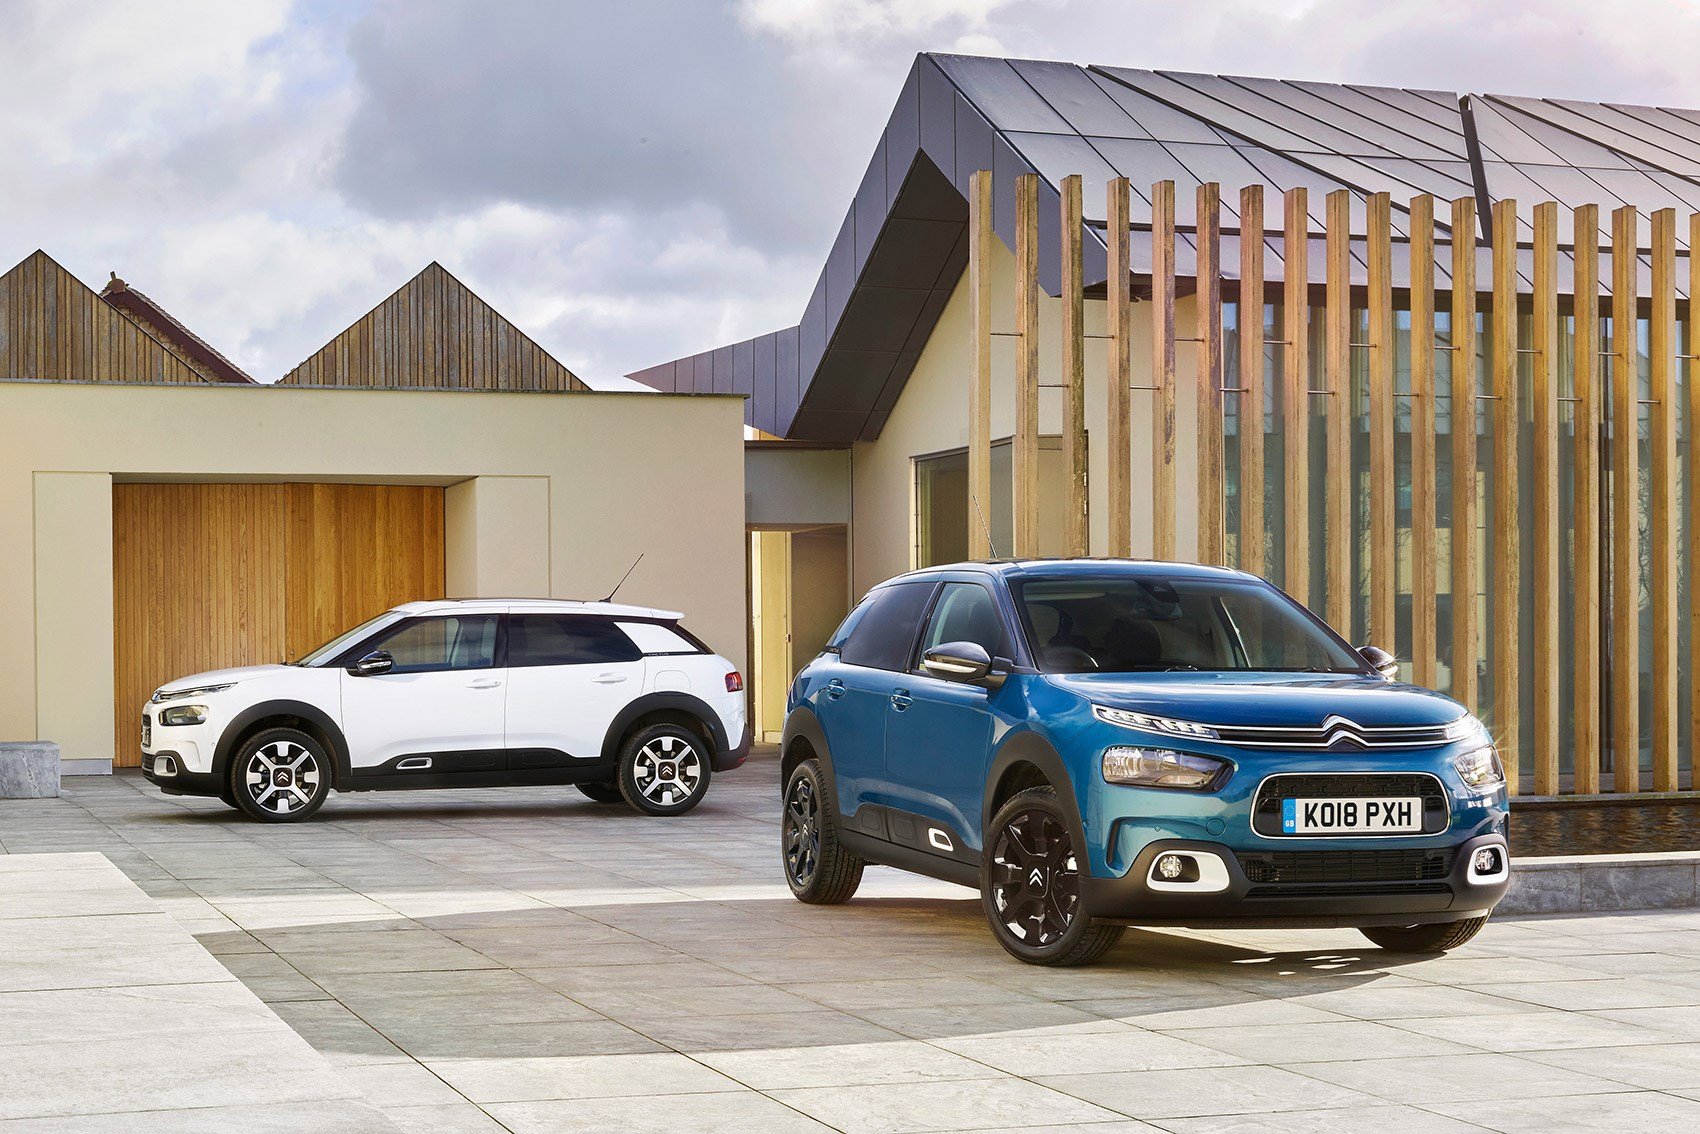 Blue and white Citroen C4 Cactus